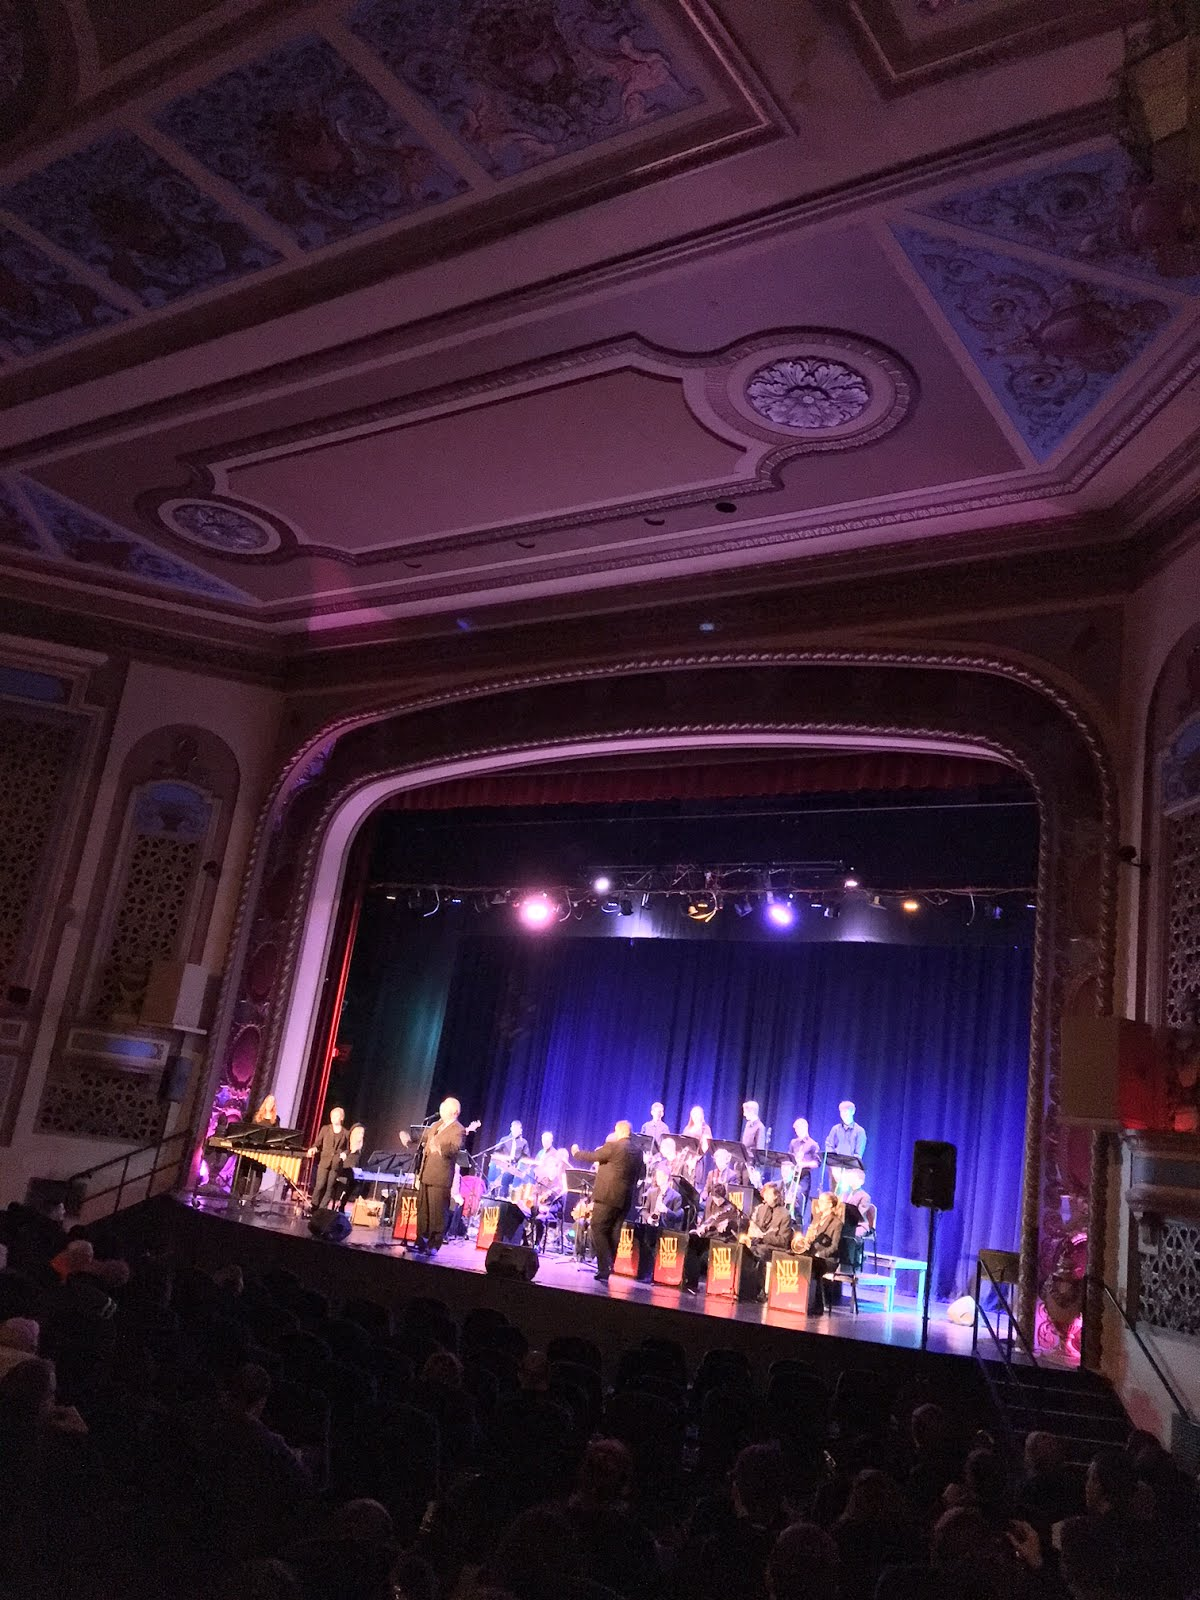 Tivoli Theatre In Downers Grove Il Downers Grove North High School Bands 2018